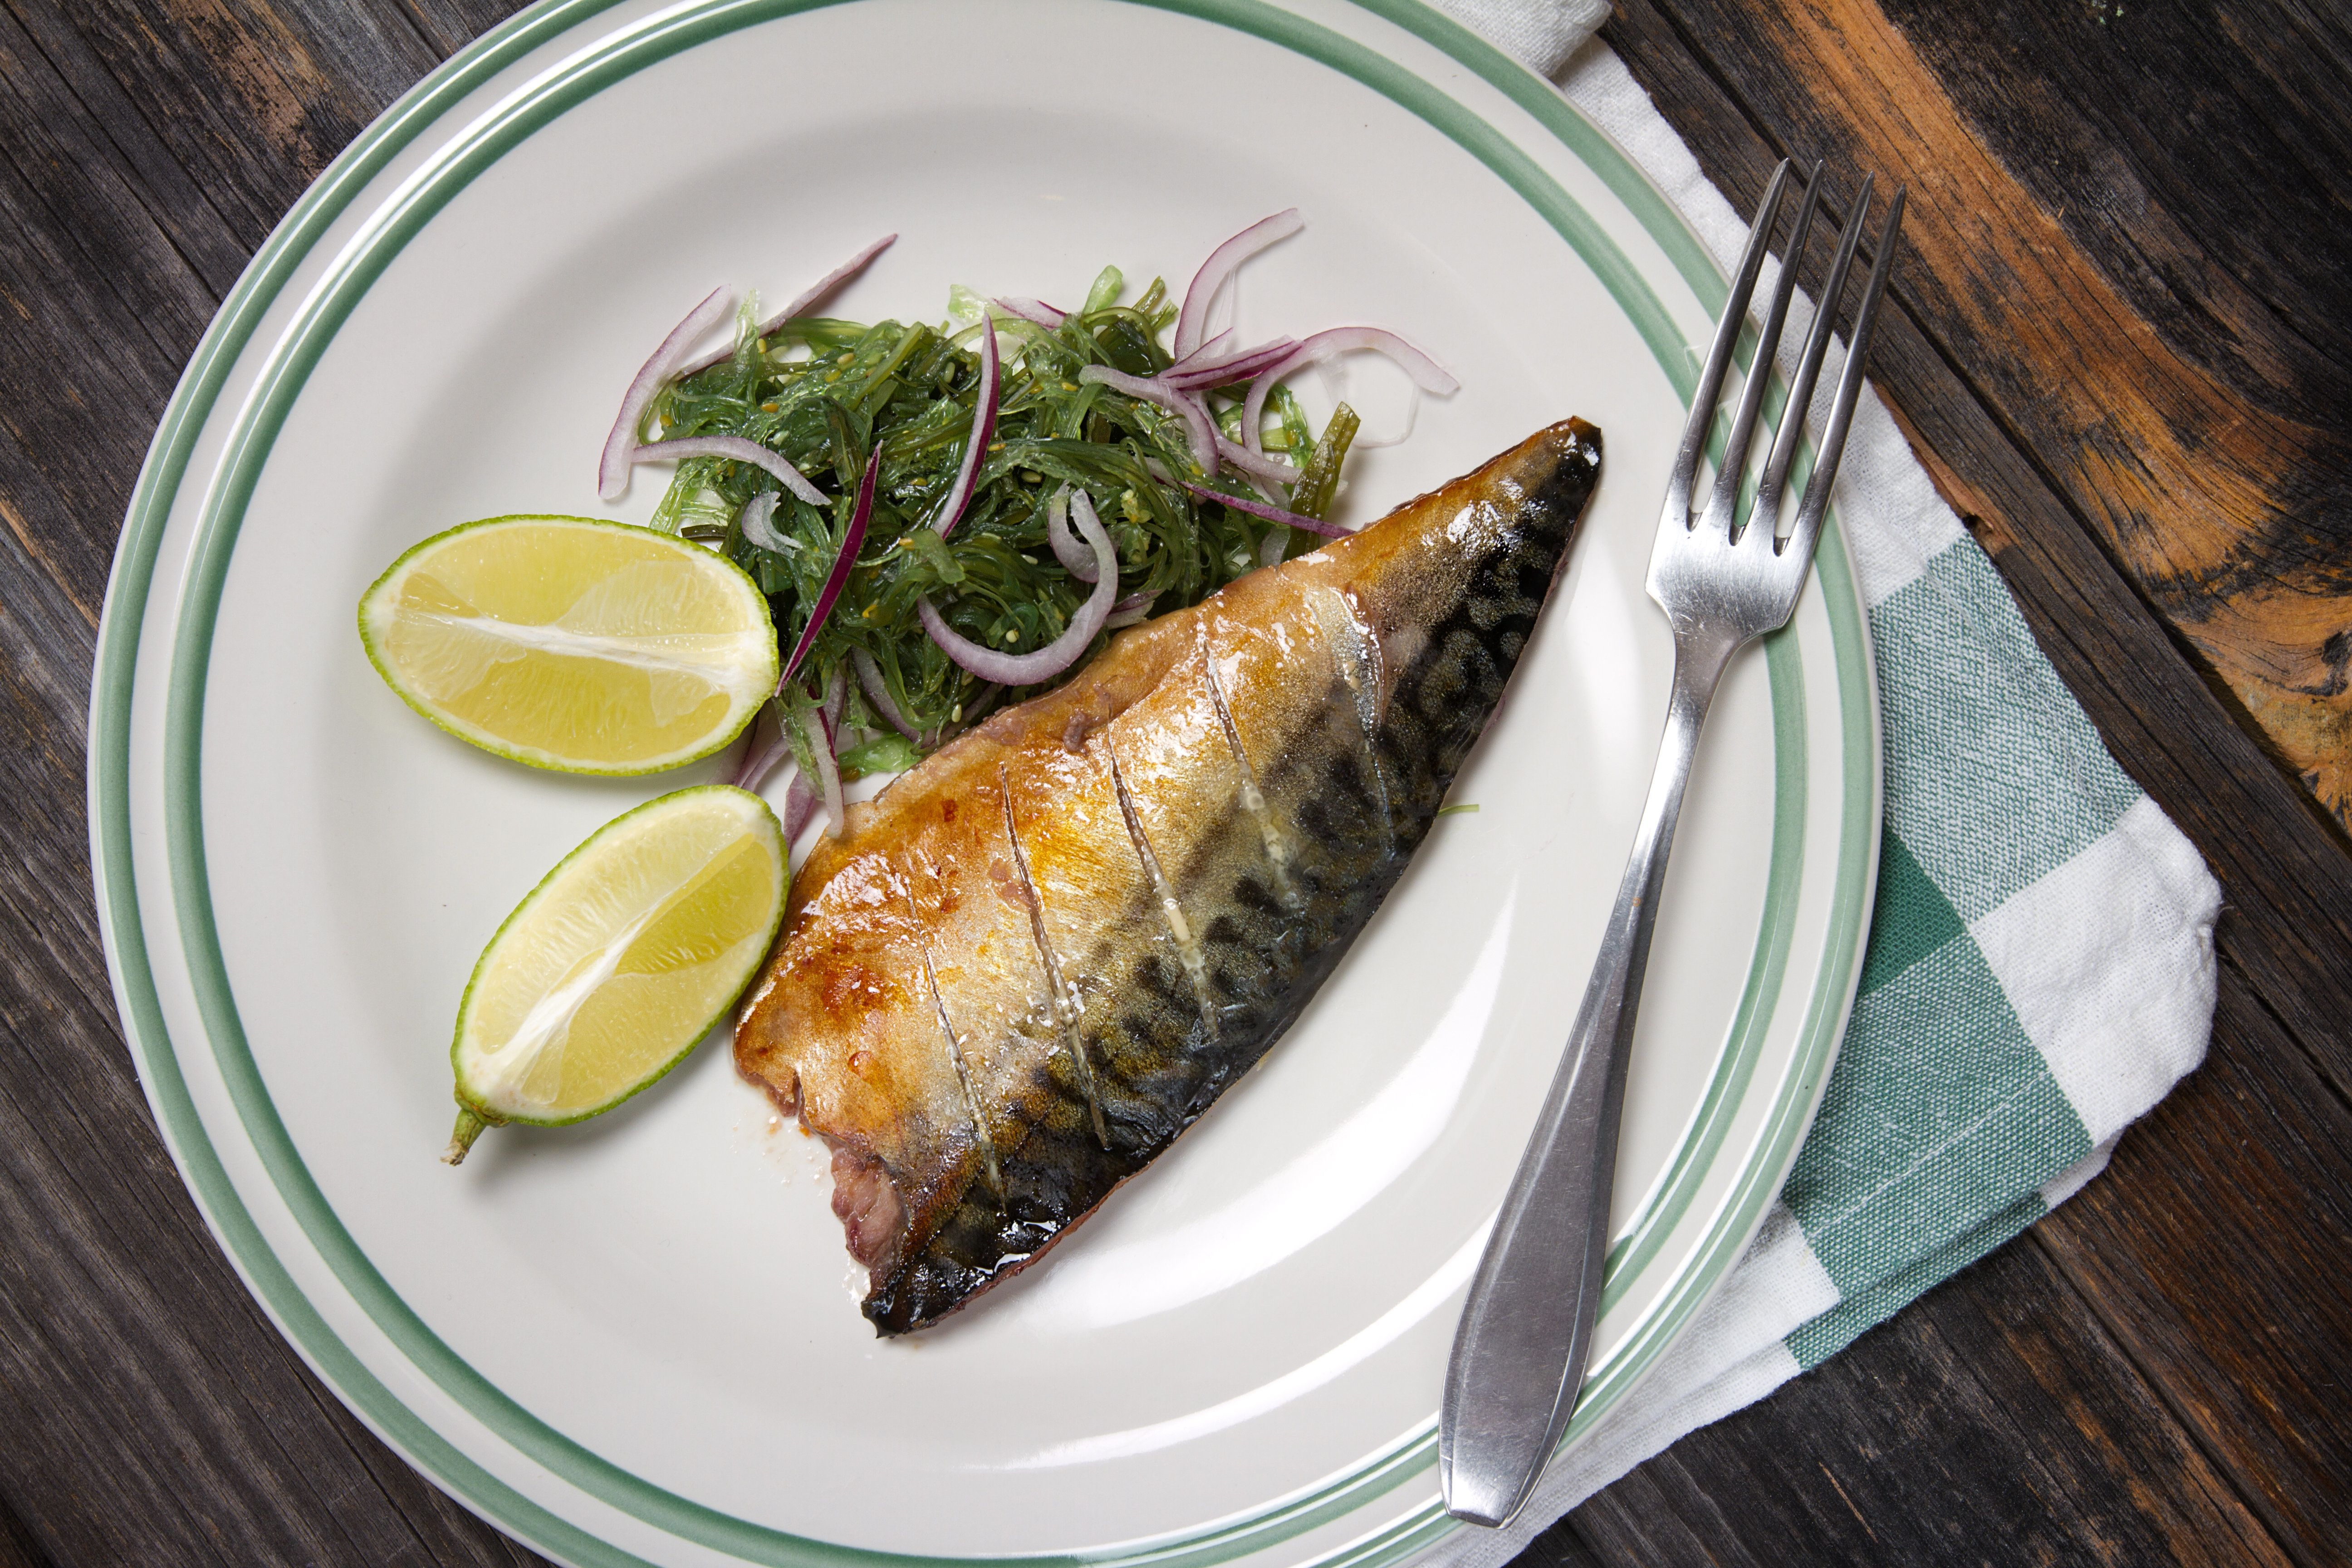 Oily Fish And Legumes 'Could Delay Menopause By 3